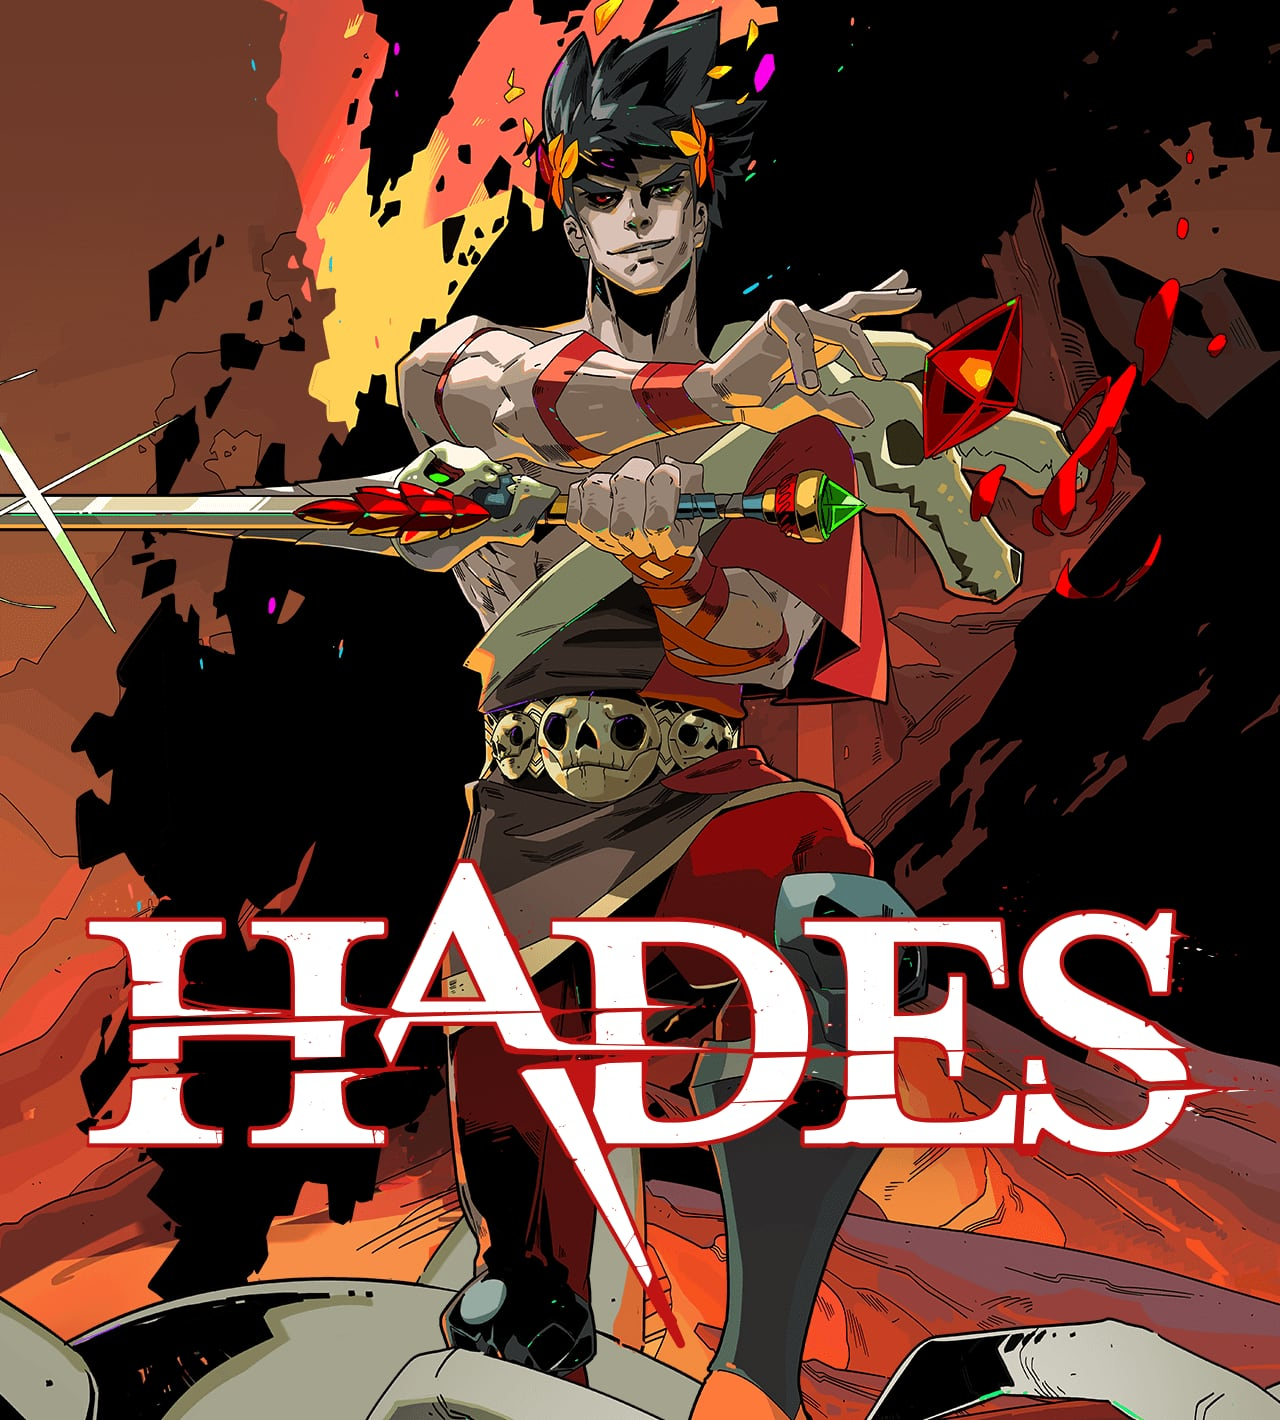 Hades for $9.99 AC on Epic Store